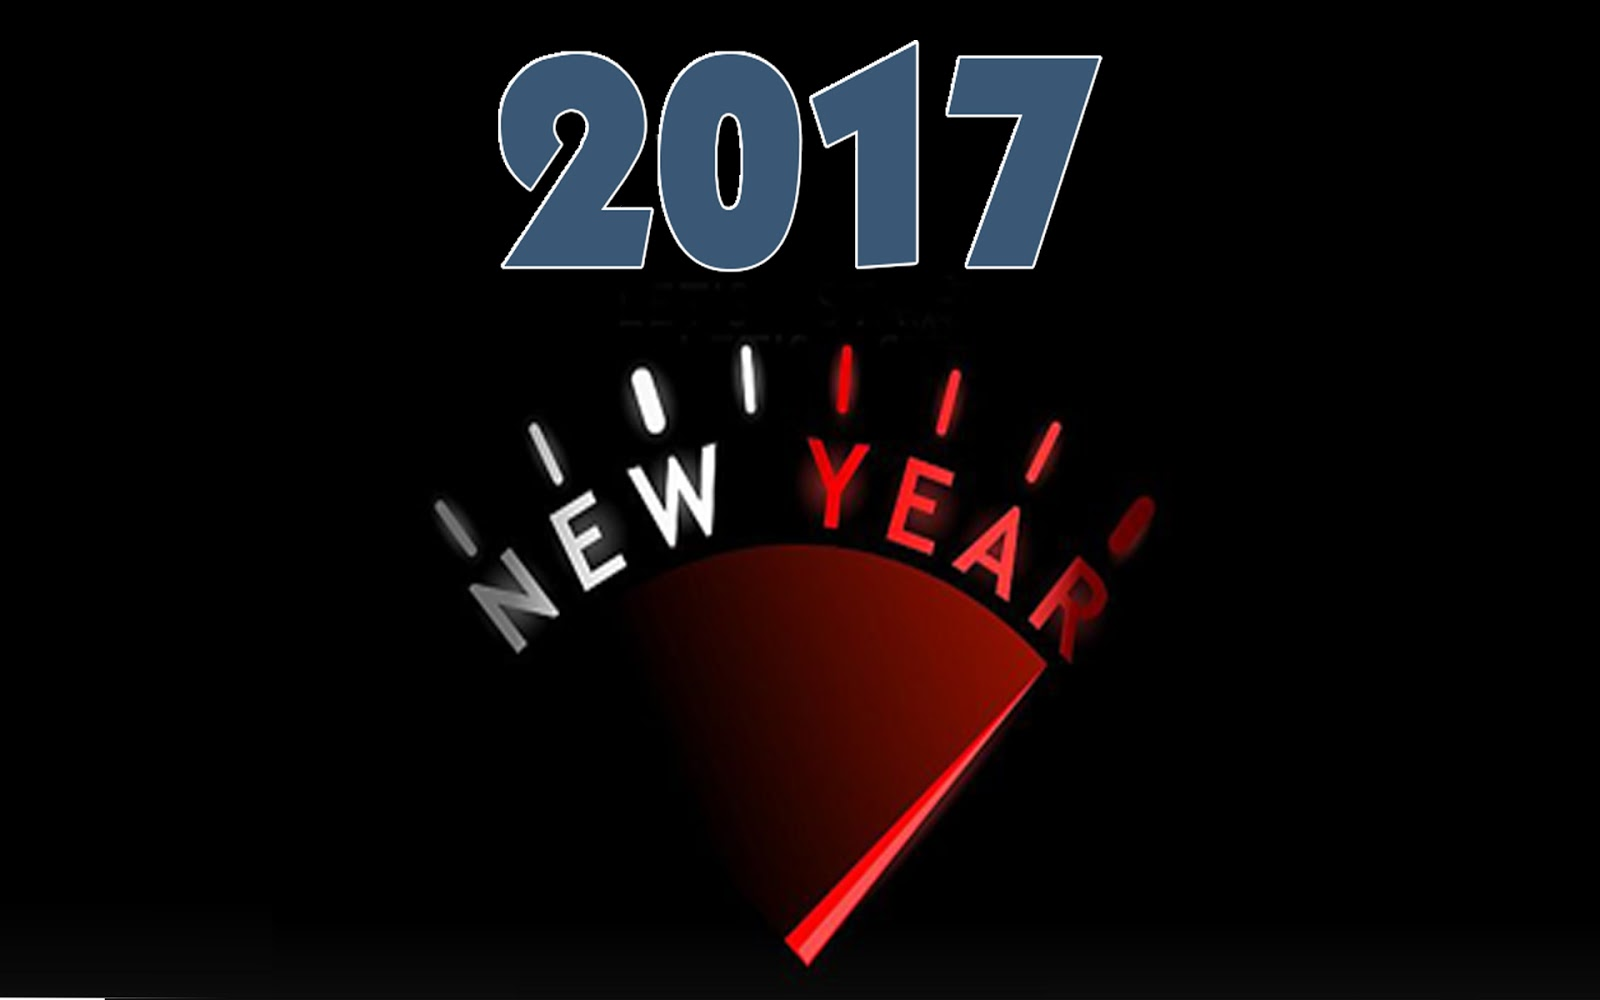 Latest New Year Wallpapers 2017